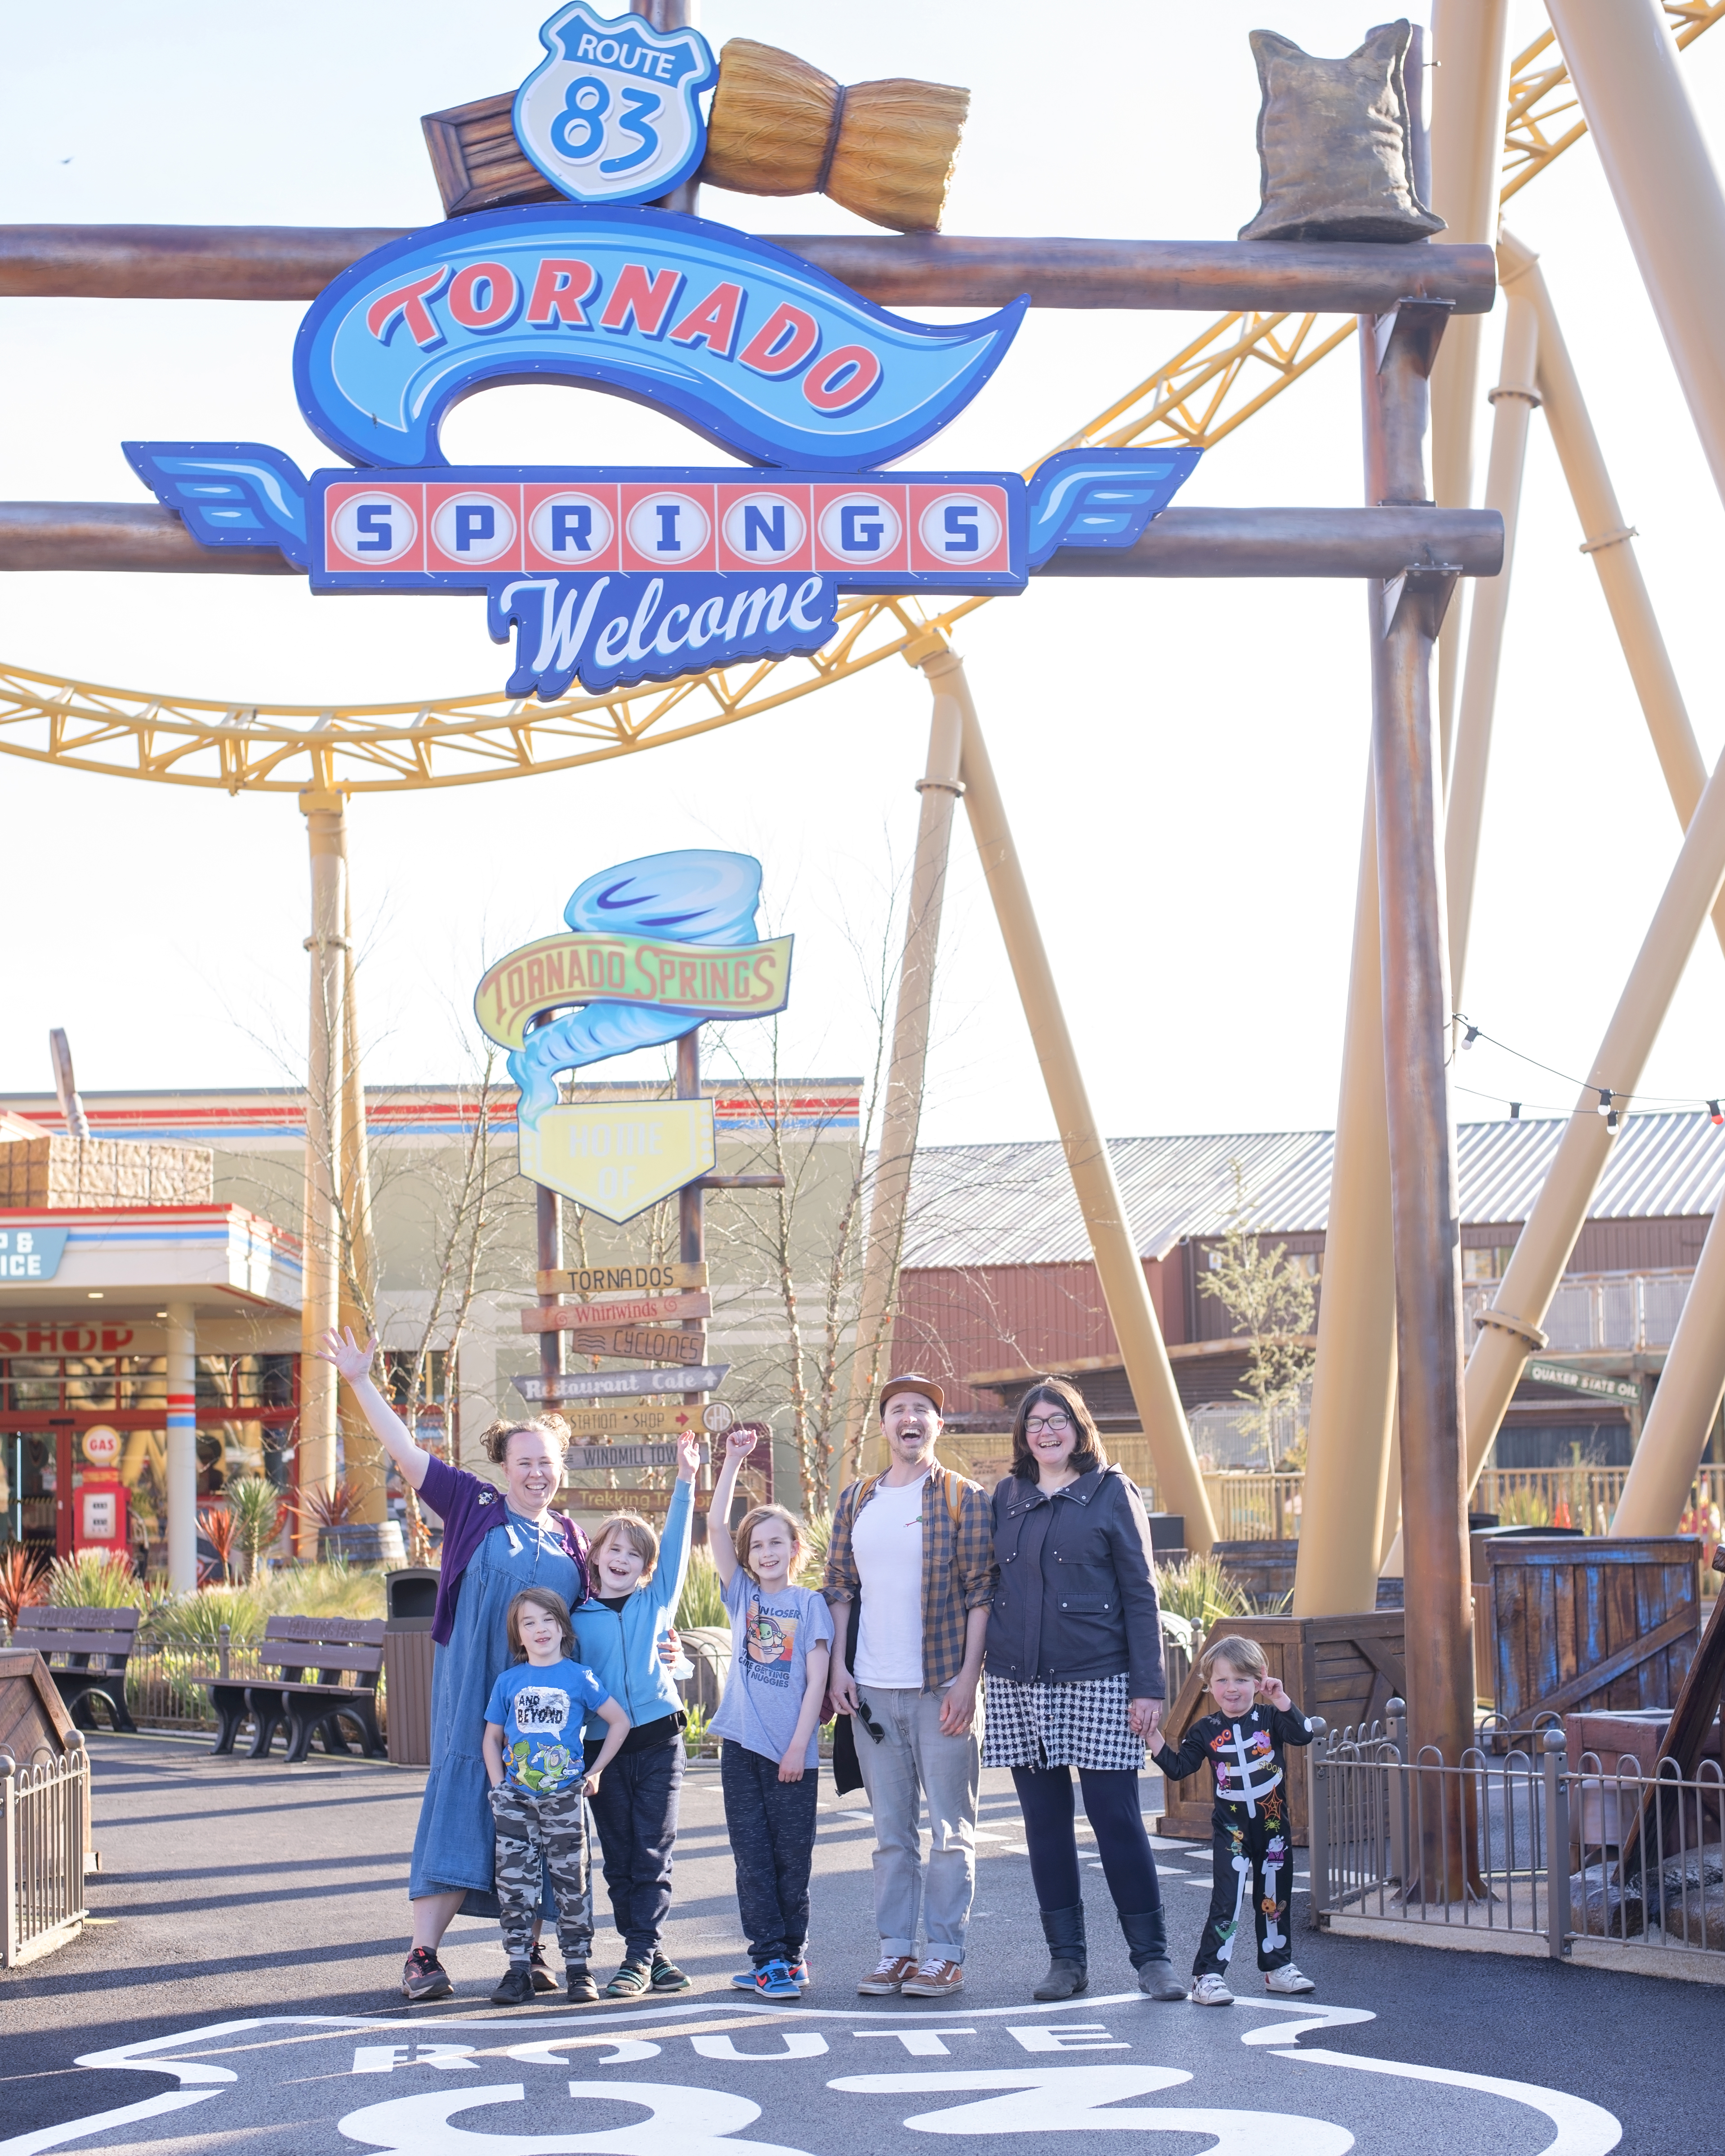 Image shows a family of seven stood underneath the Paultons park Tornado Springs rollercoaster and sign in ower, hampshire. The rollercoaster is the yellow storm chaser new for 2021 and on the floor is a large painted white route 83 logo.